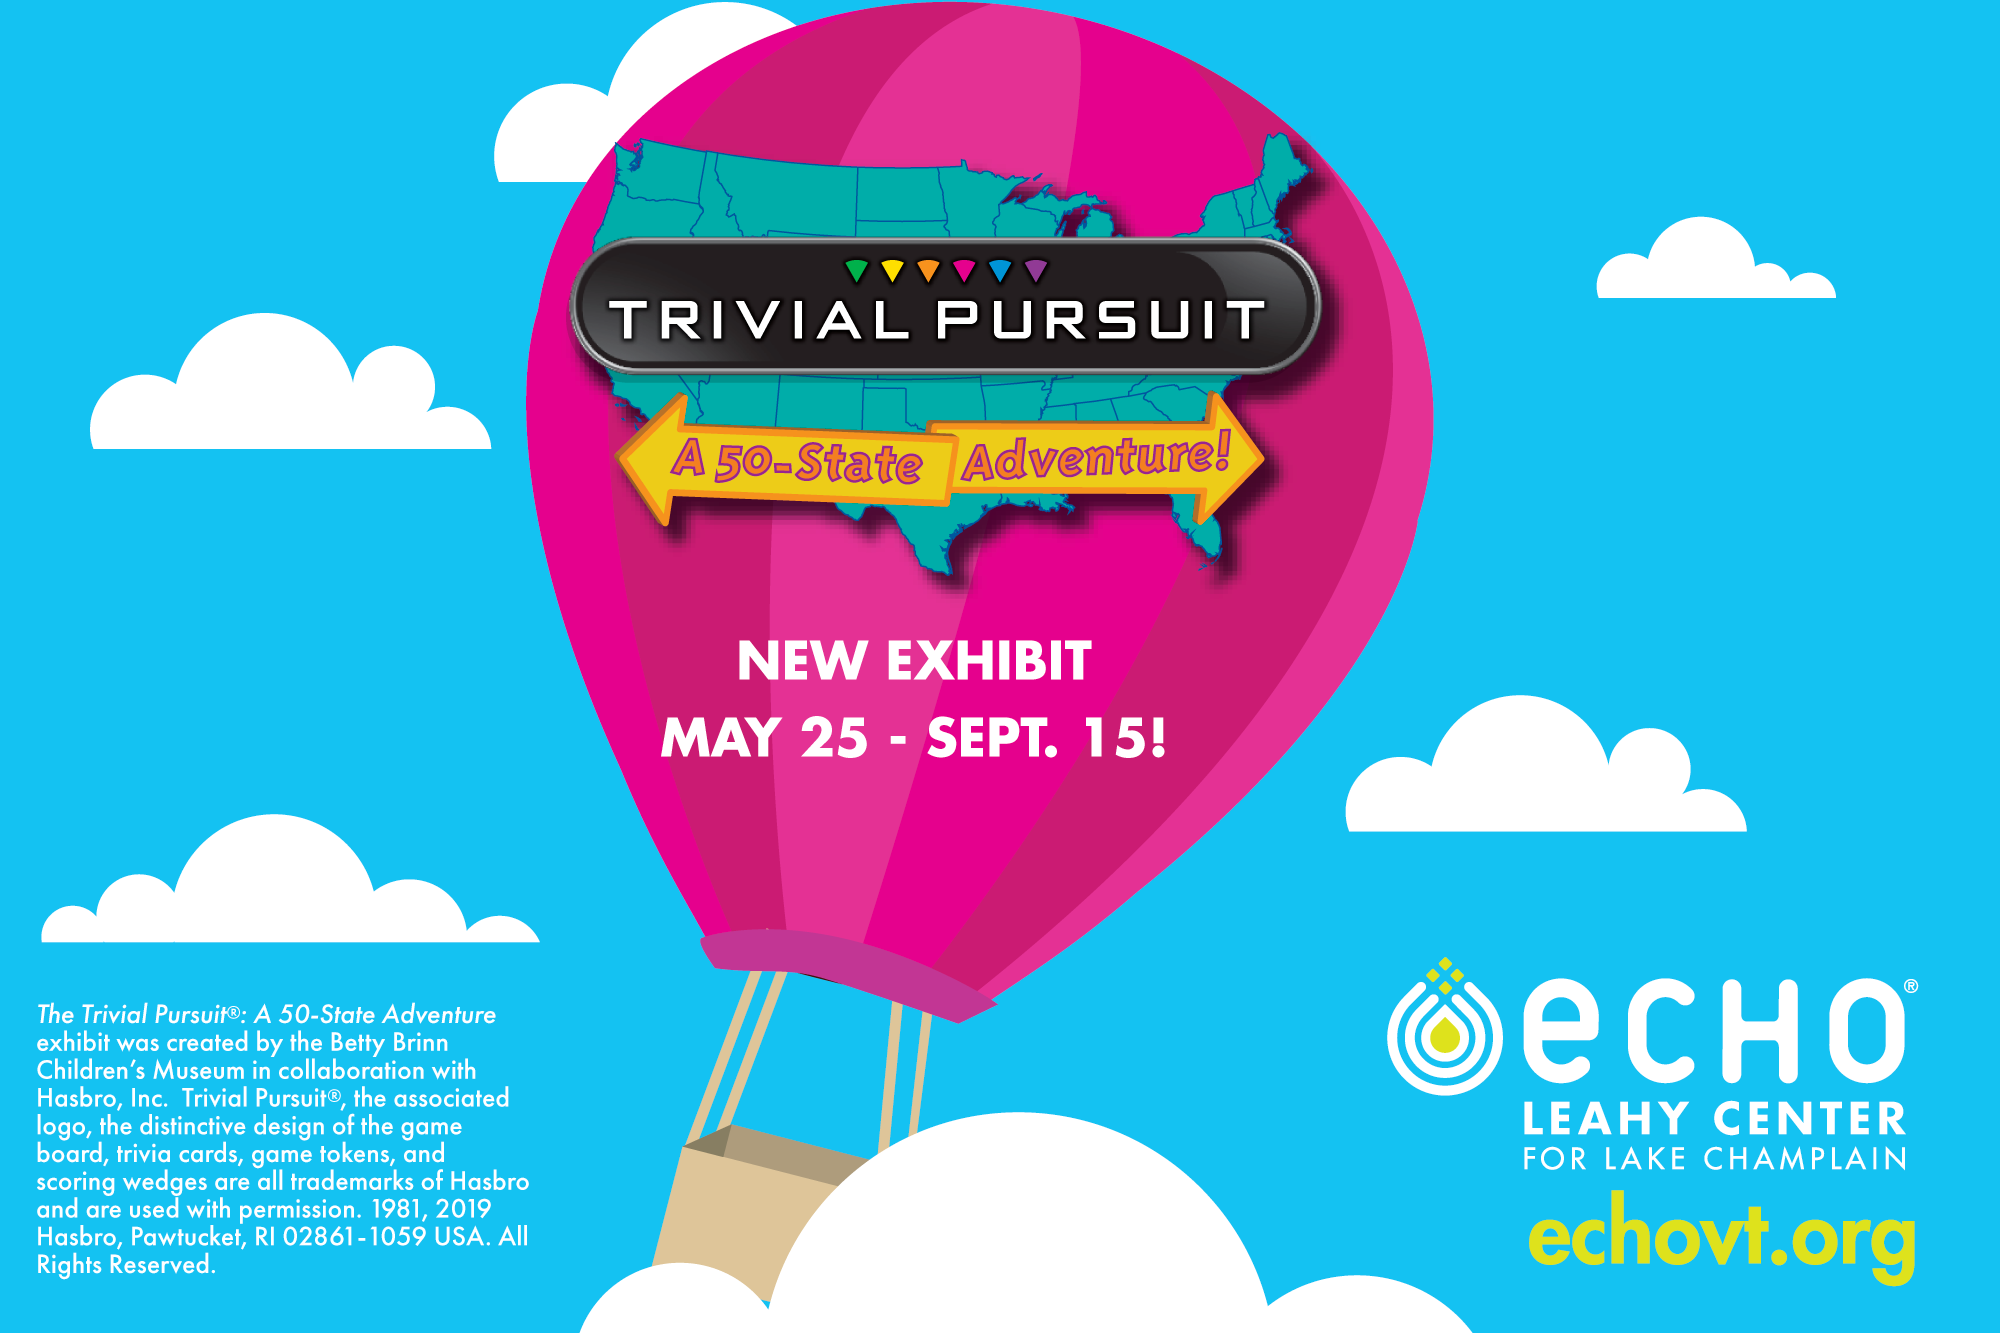 Trivial Pursuit Exhibit